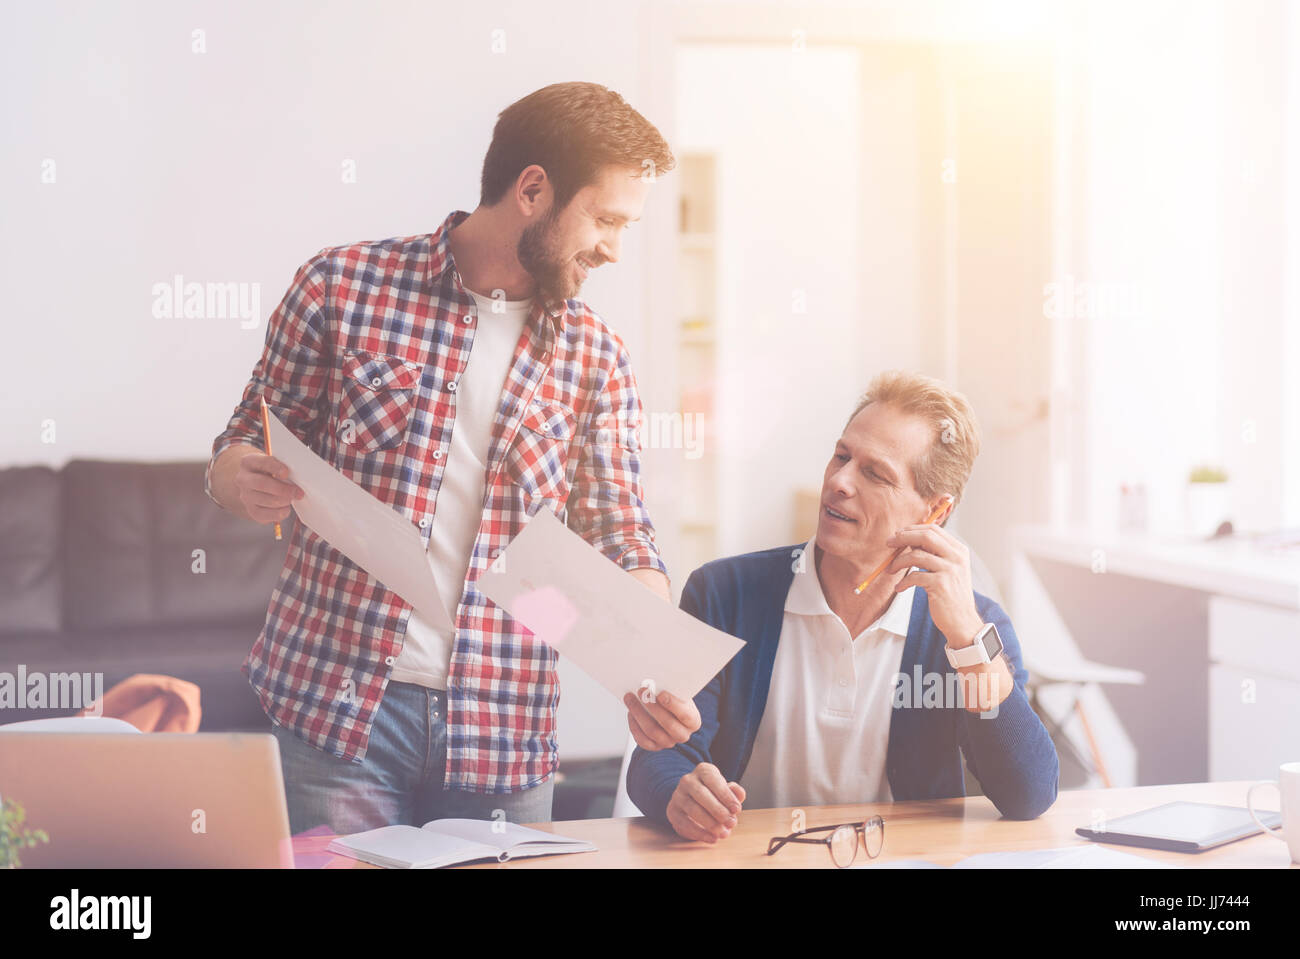 Positive colleagues helping each other in the office - Stock Image